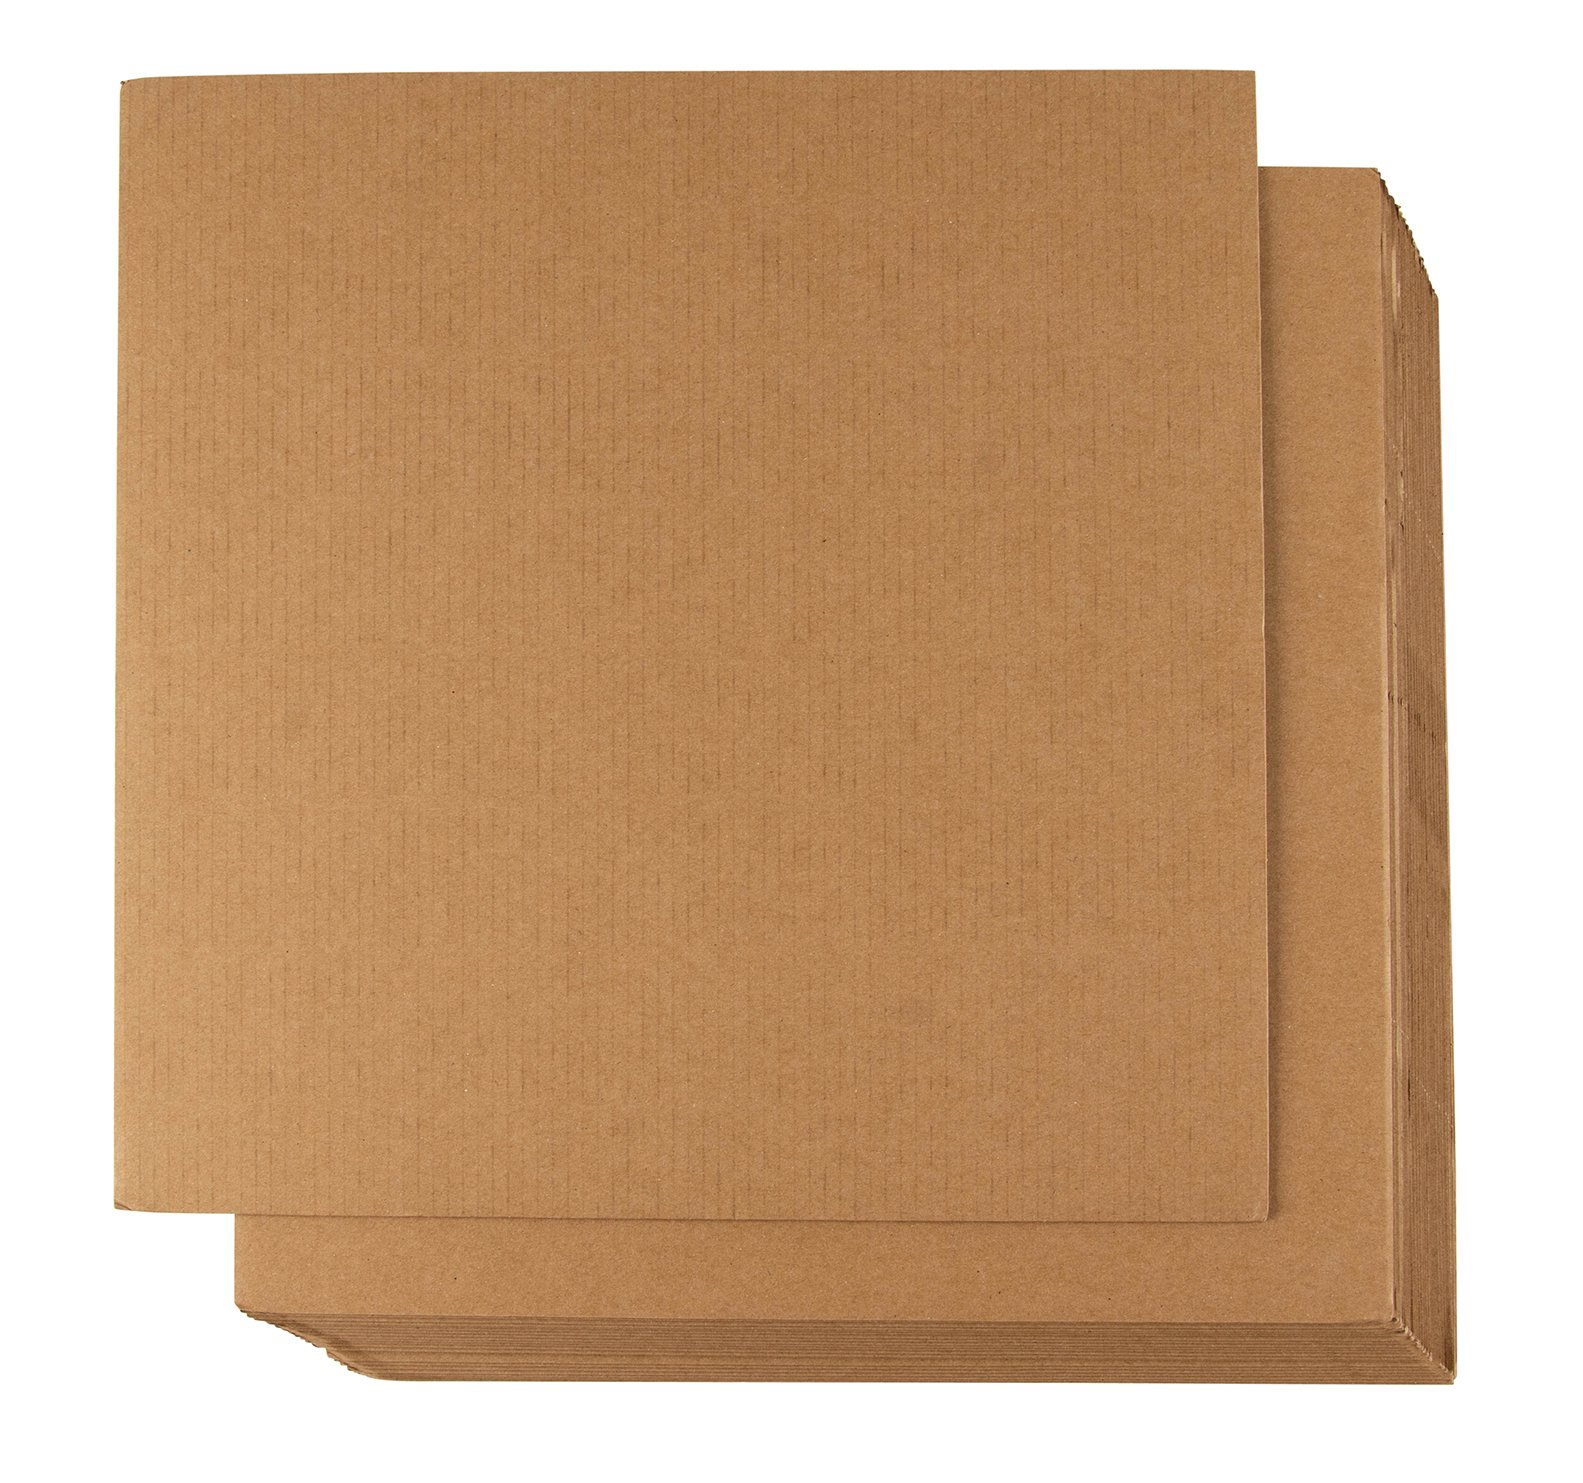 Corrugated Cardboard Sheets - 24-Pack Flat Cardboard Sheets, Cardboard Inserts for Packing, Mailing, Crafts - Kraft Brown, 12 x 12 Inches by Juvale